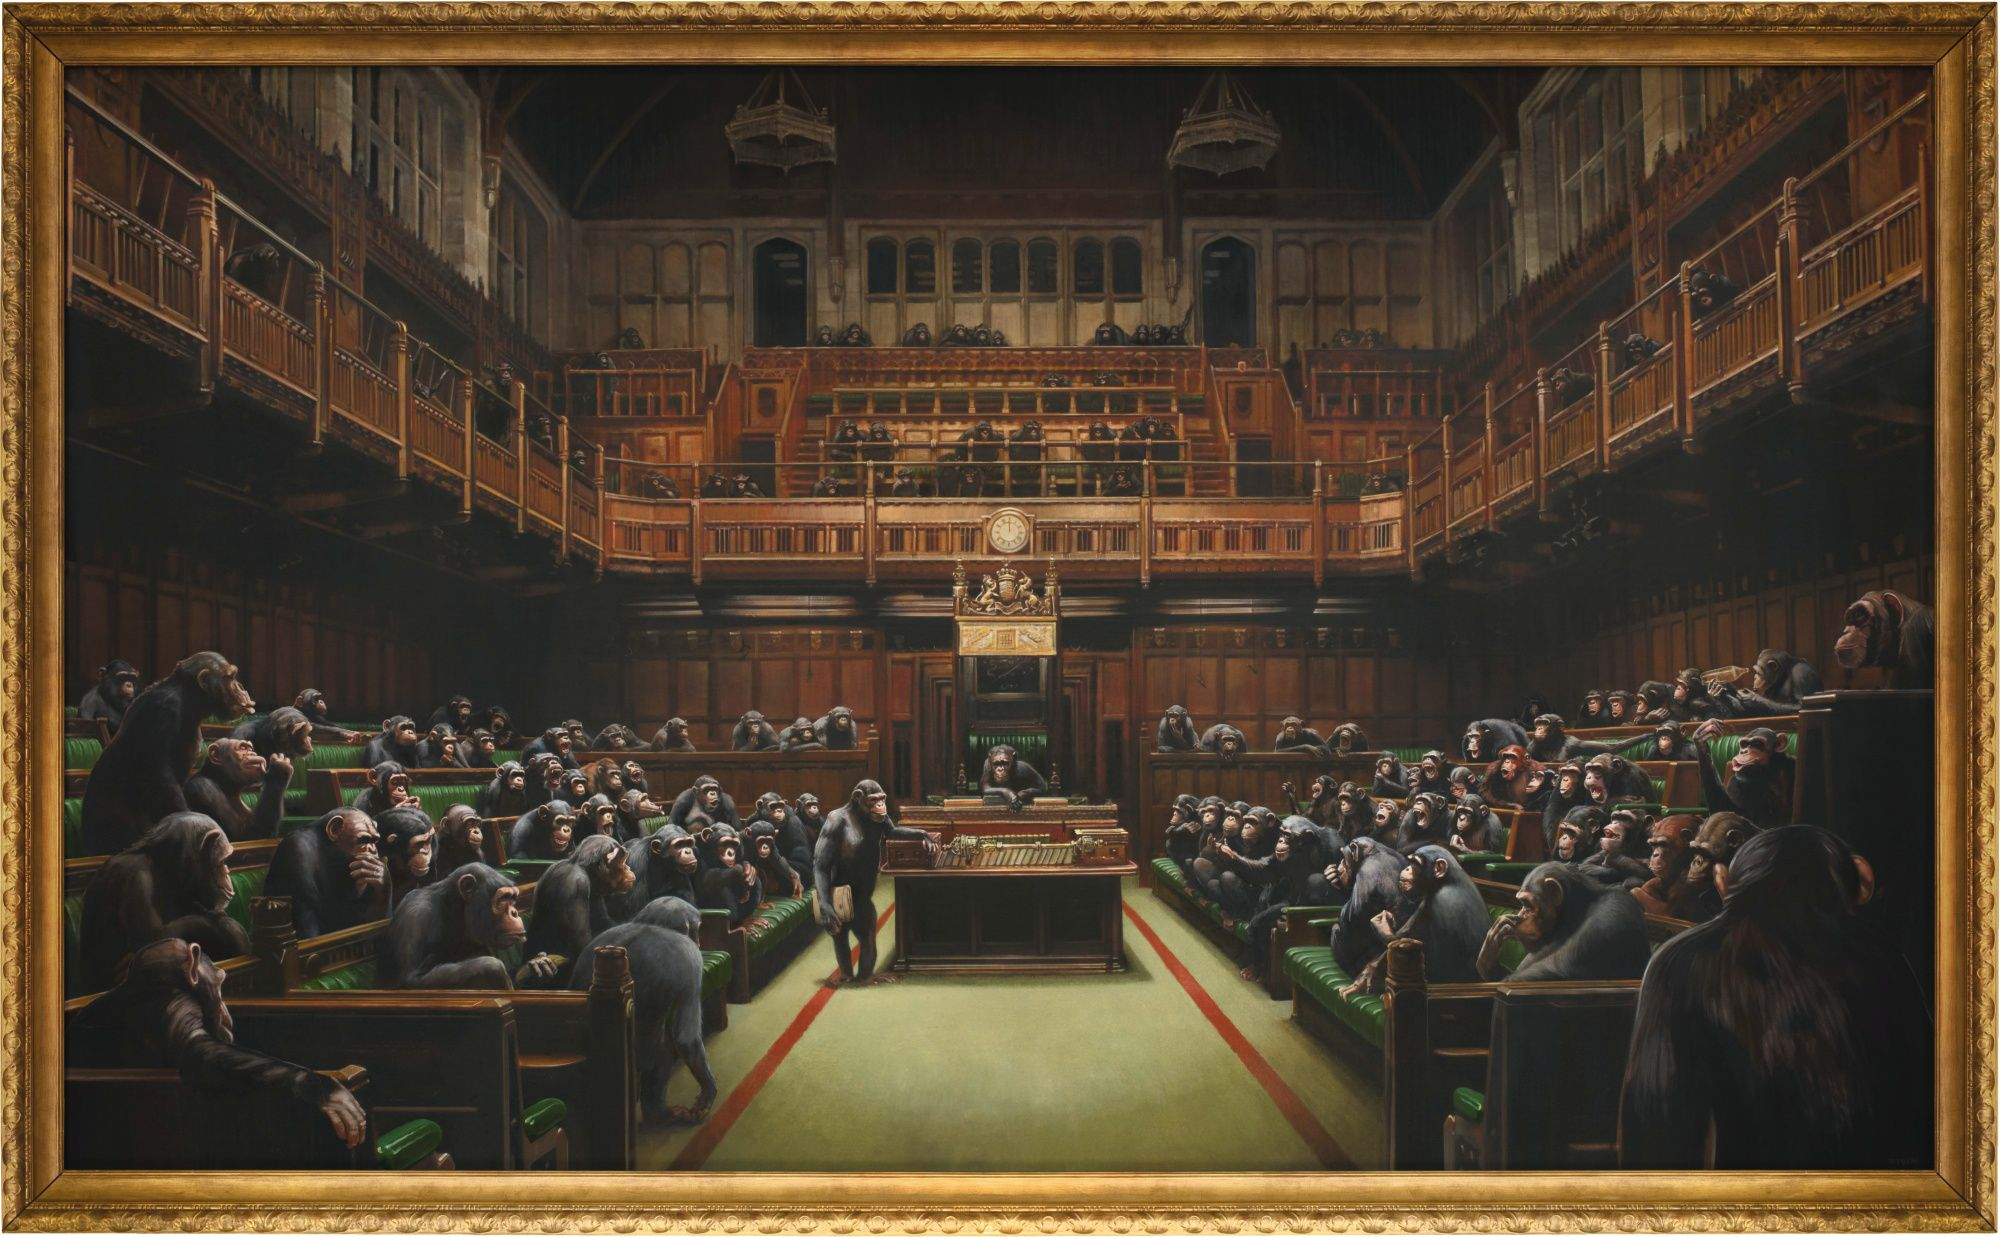 Devolved Parliament, by Banksy